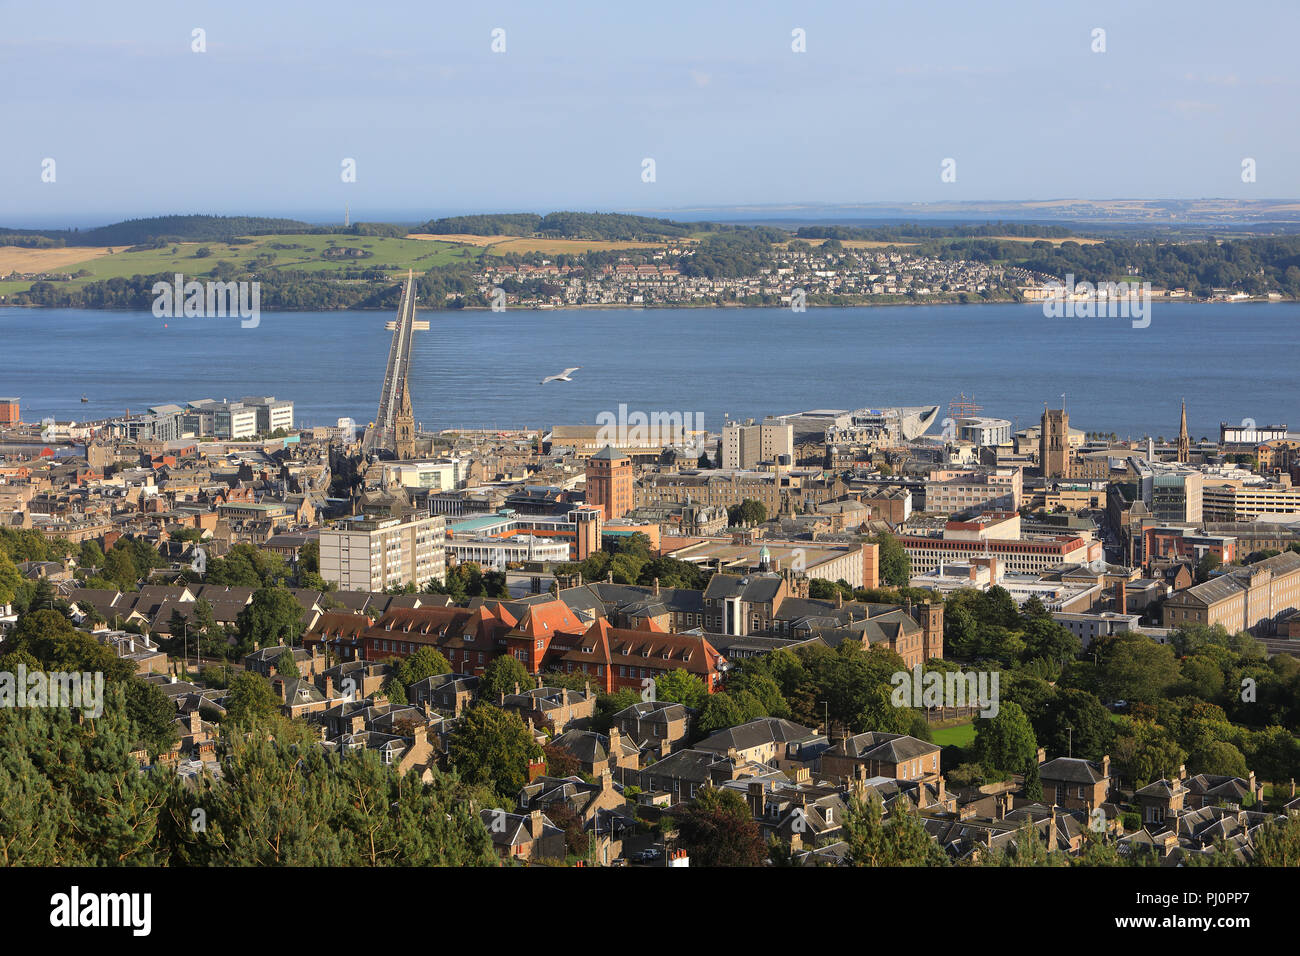 The view from Dundee Law, over the city and the River Tay, in Scotland, UK Stock Photo